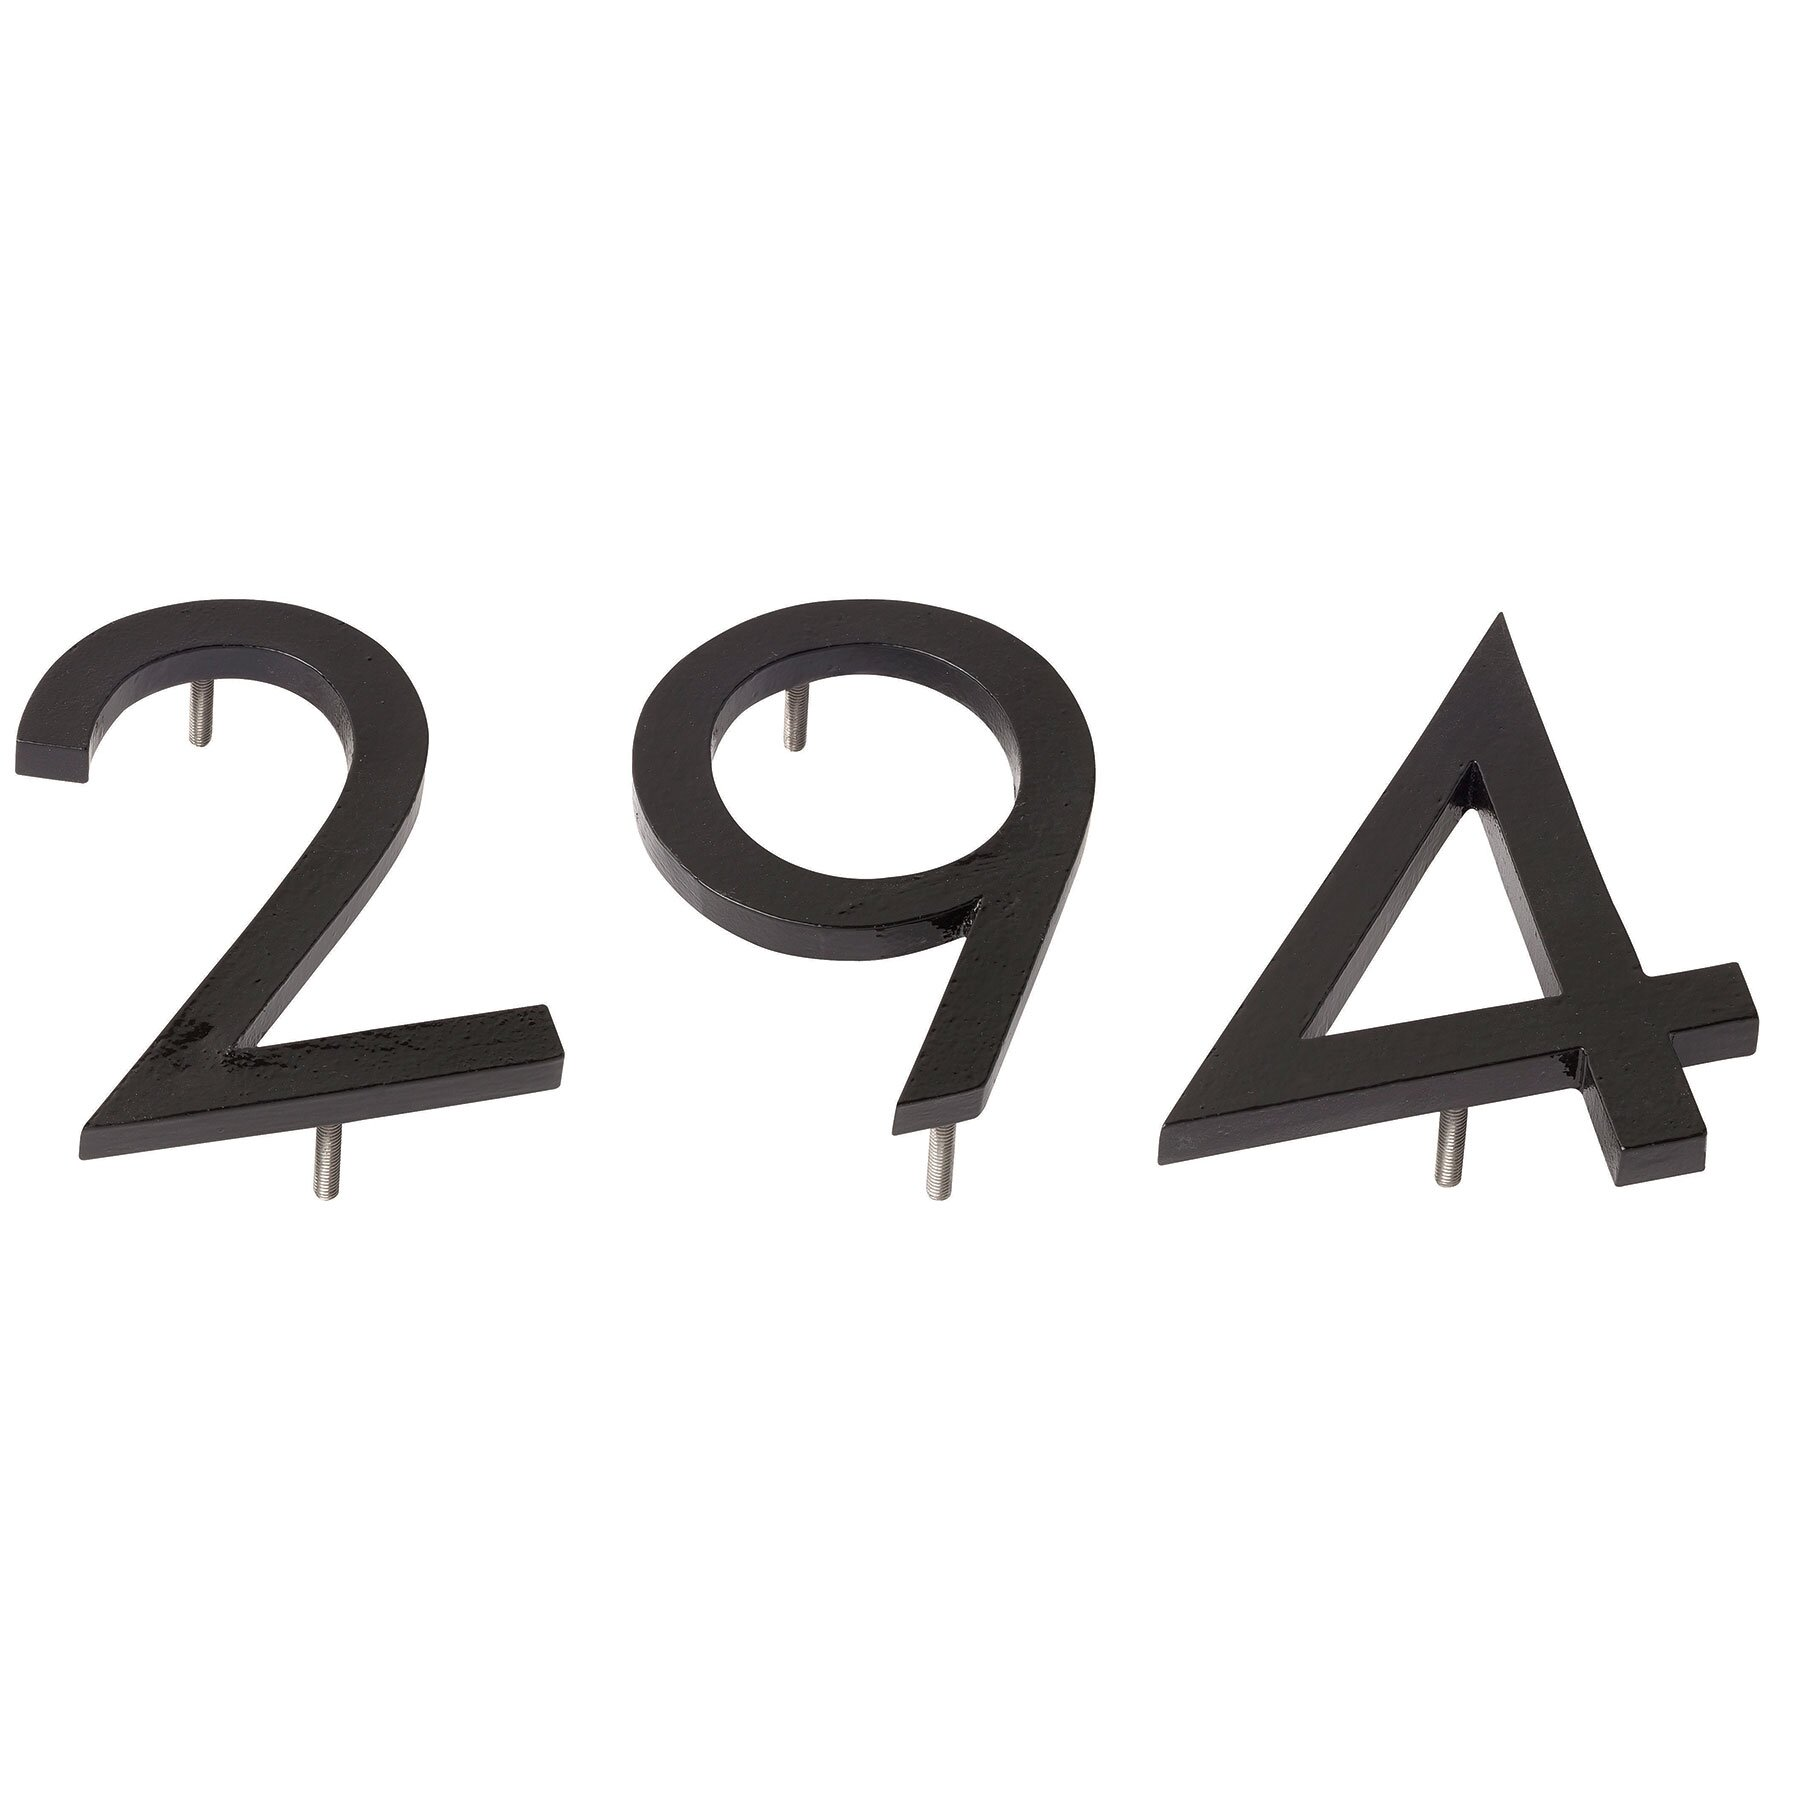 Front Door Decor: Montague Metal Products Modern House Numbers